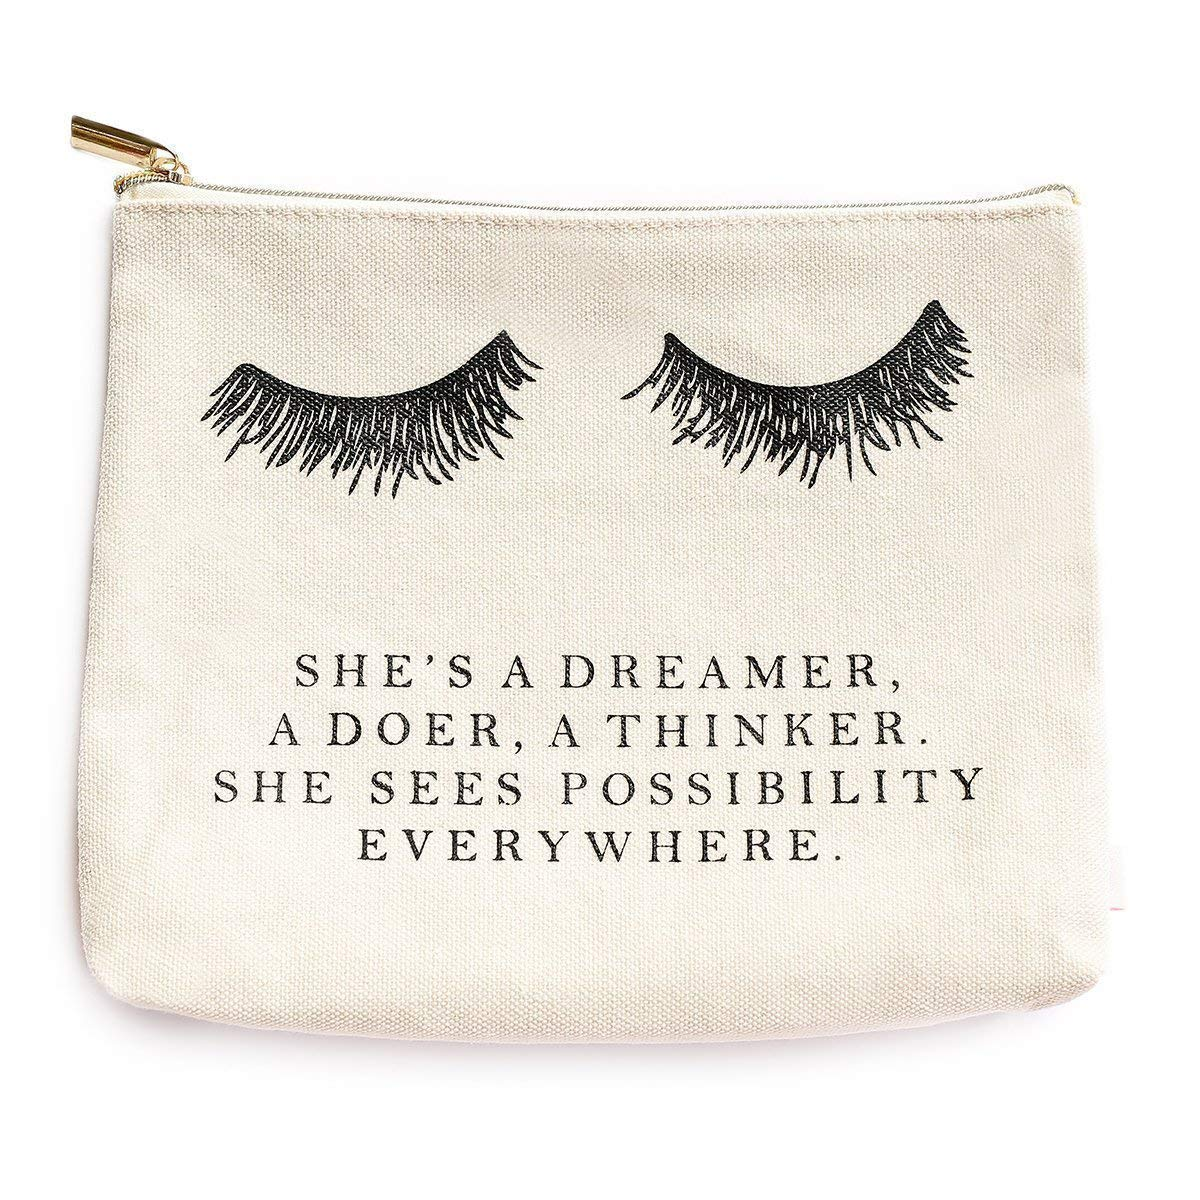 Eyelash She s A Dreamer Cotton Canvas Makeup Bag Inspirational Motivational Gift for Her Makeup Organizer Eyelashes Make Up Bag Canvas Bag Lashes Toiletry Bag Cosmetic Bag Lash Travel Accessories